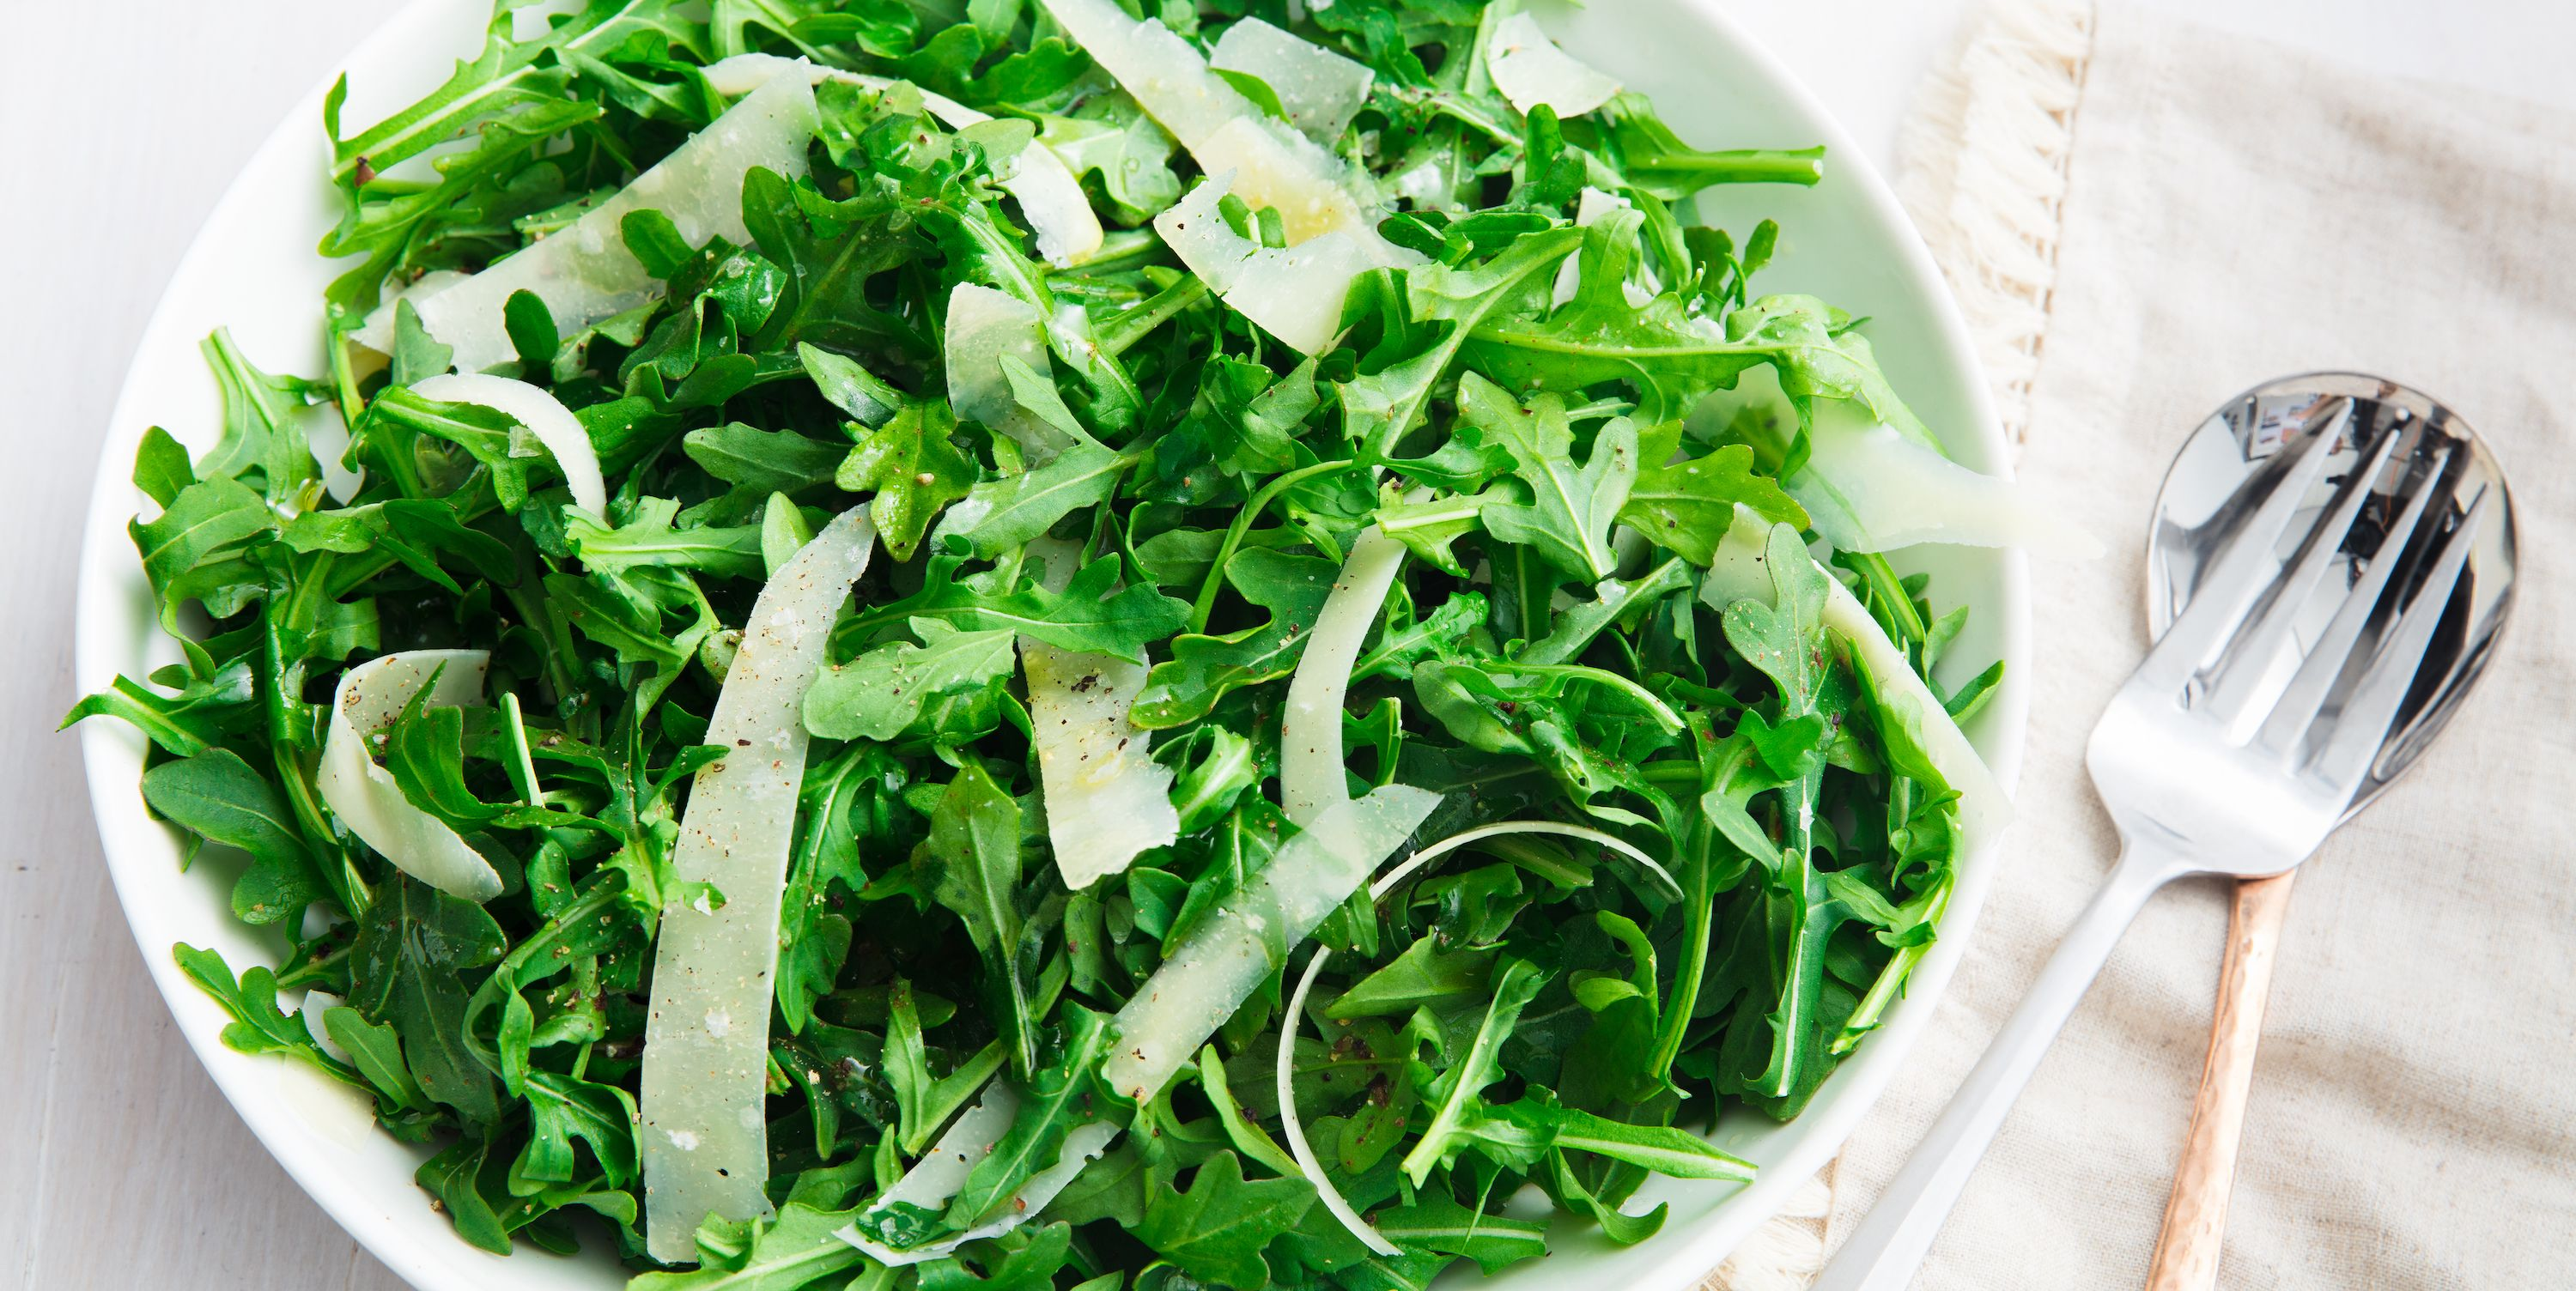 15 Awesome Arugula Salads To Make When You're Bored Of Spinach